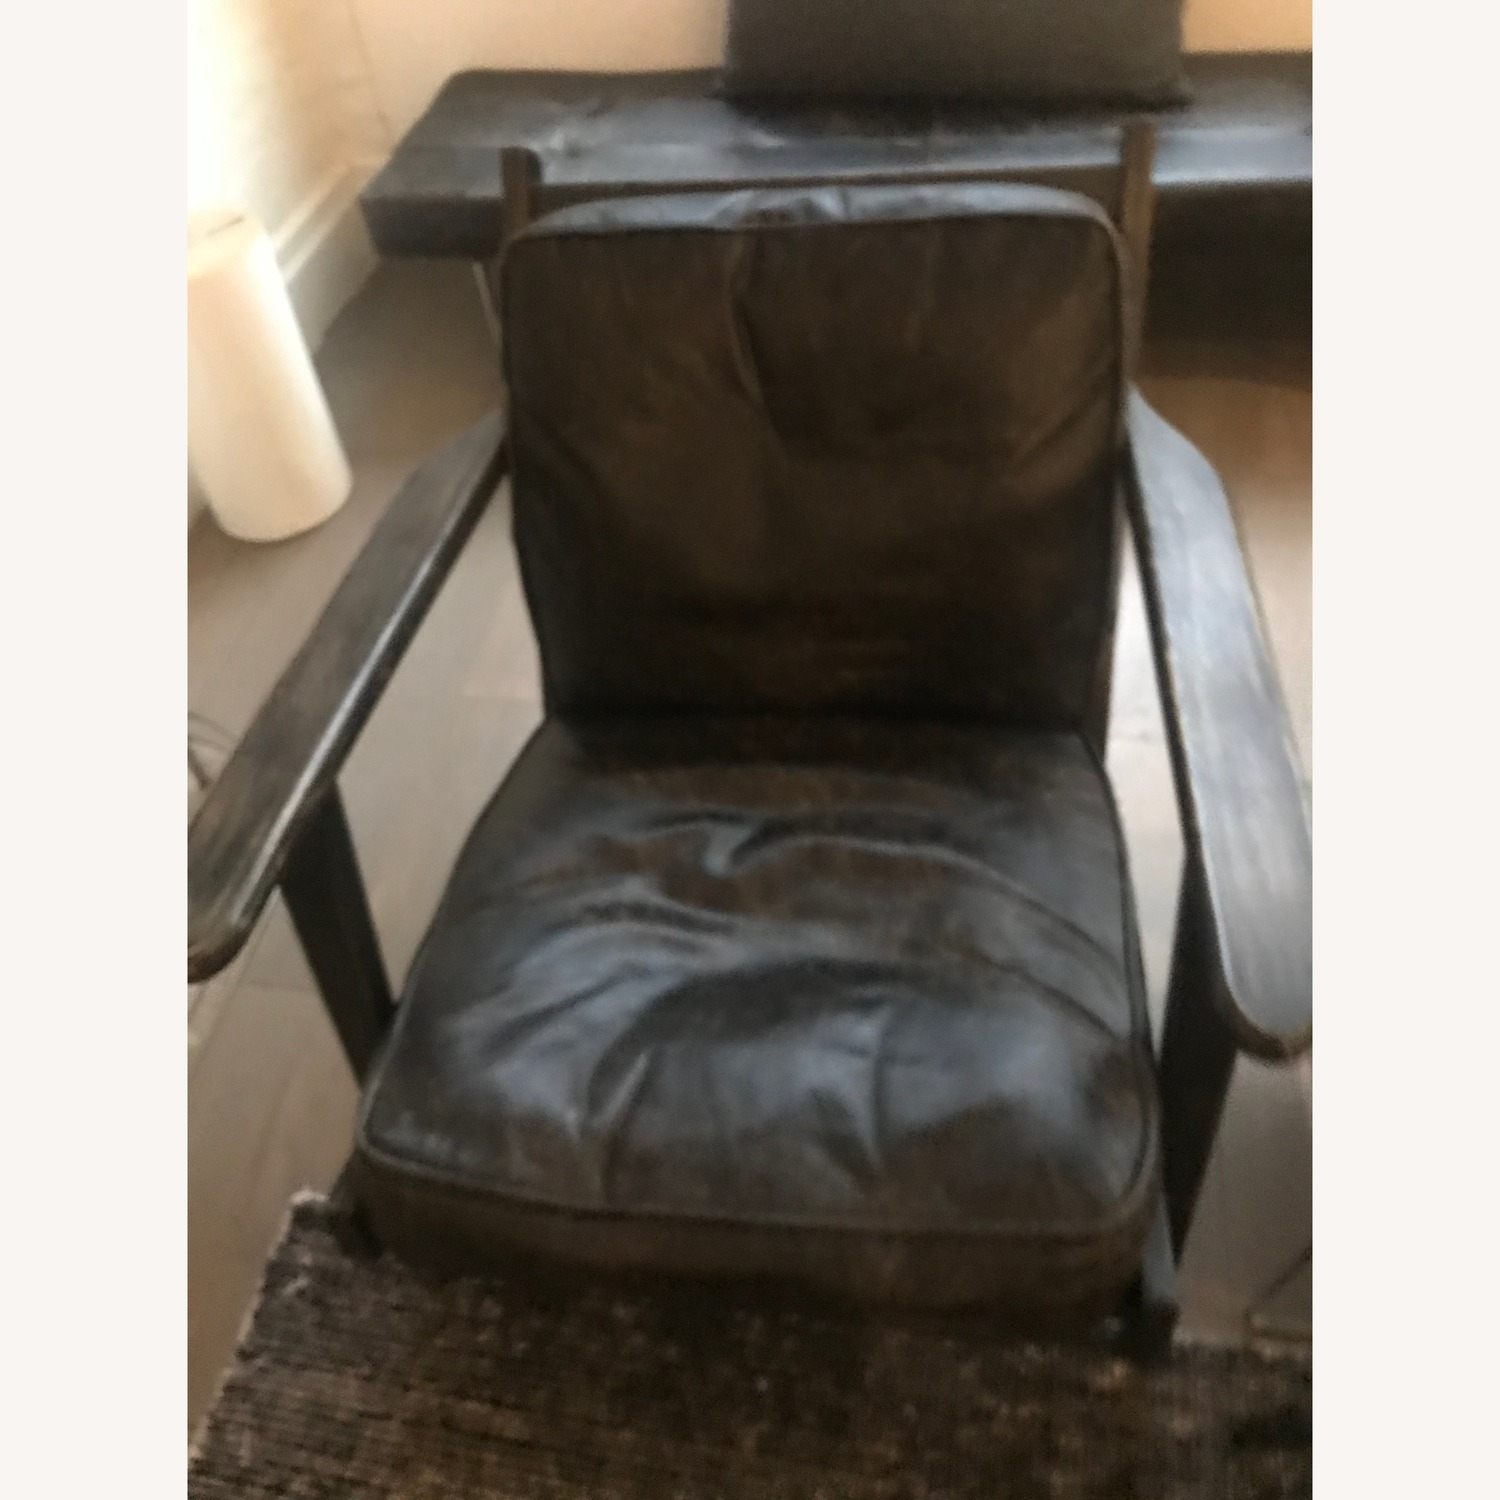 France and Son Lounge Chair - Worn Black Leather - image-1